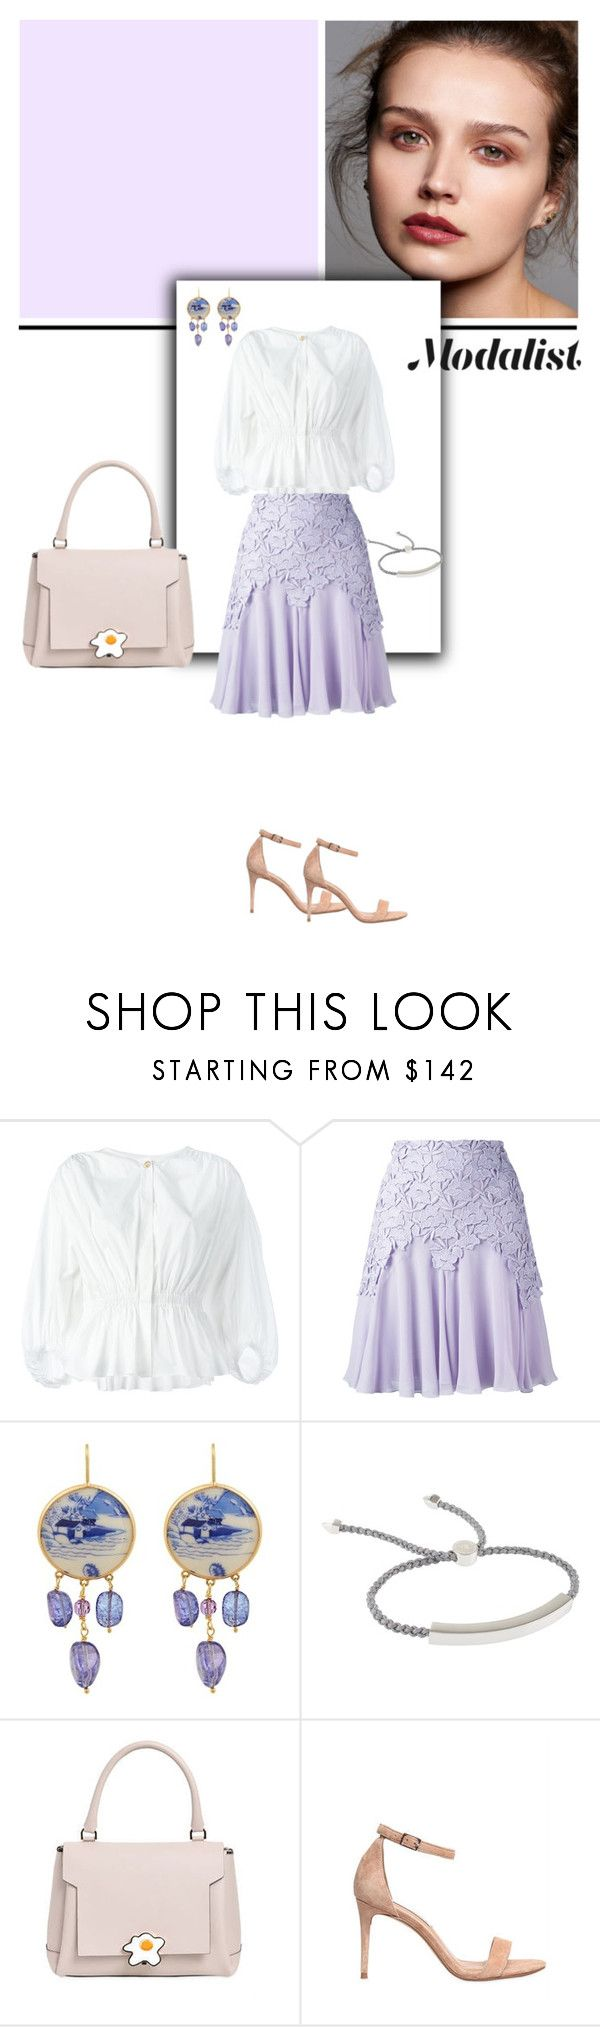 """""""Style Up in a Lace Trim Skirt"""" by modalist ❤ liked on Polyvore featuring Sonia Rykiel, Giambattista Valli, Brigid Blanco, Monica Vinader, Anya Hindmarch and Steve Madden"""